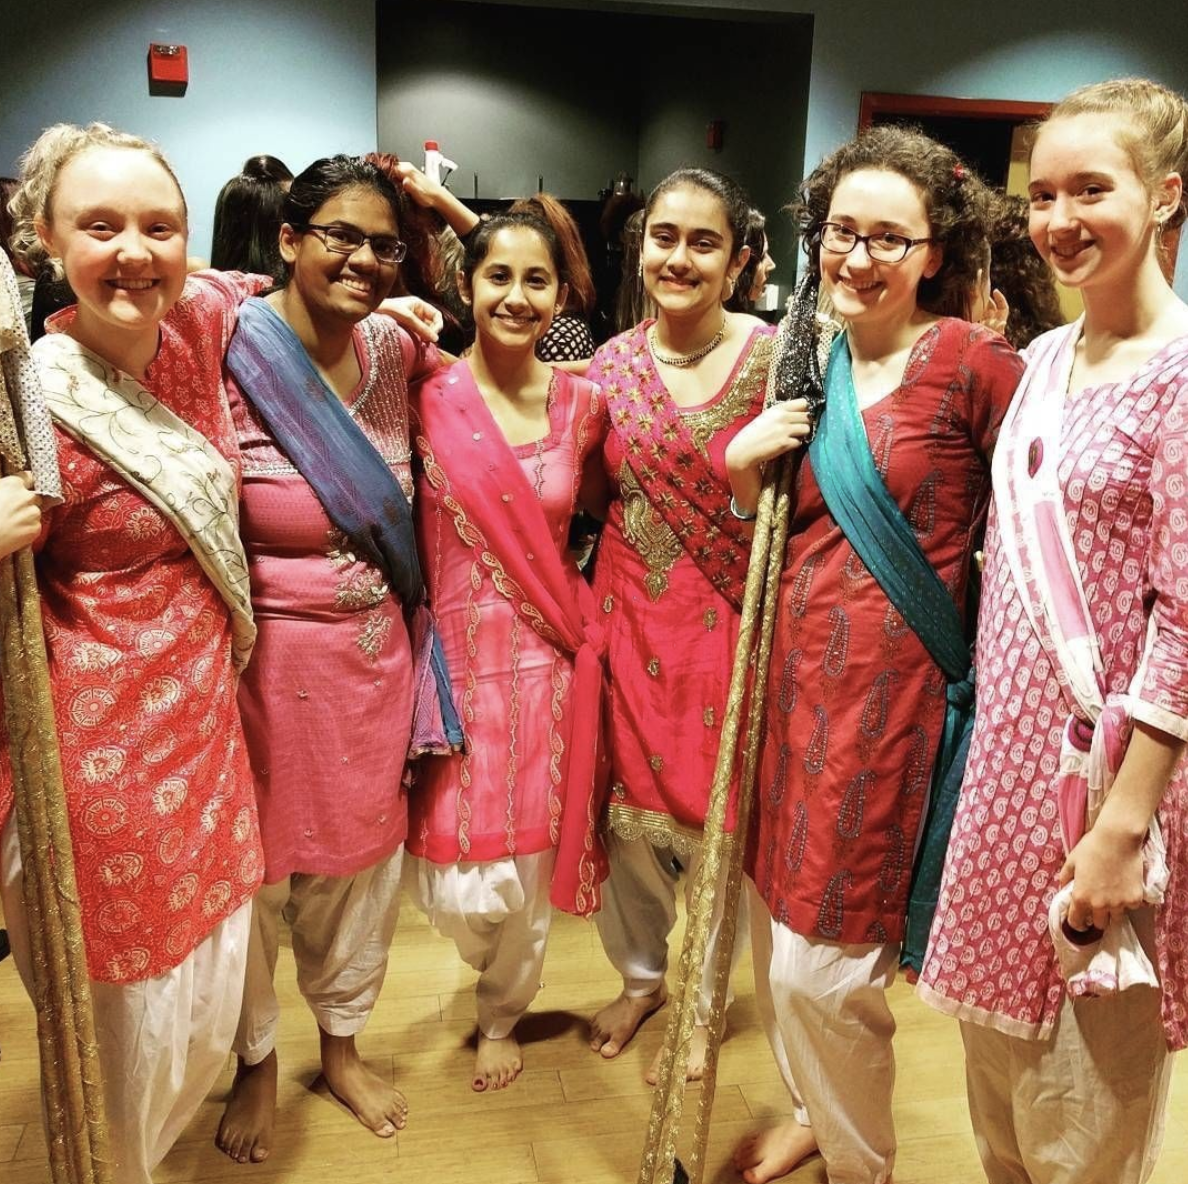 #womenrockwednesday   To increase traffic and engagement on social pages, I connected with and featured many of the amazing female-identifying performers, musicians, artists, and activists in the MEPAA community with #womenrockwednesday weekly posts.   Pictured is the female leadership team of  Eugene Bhangra